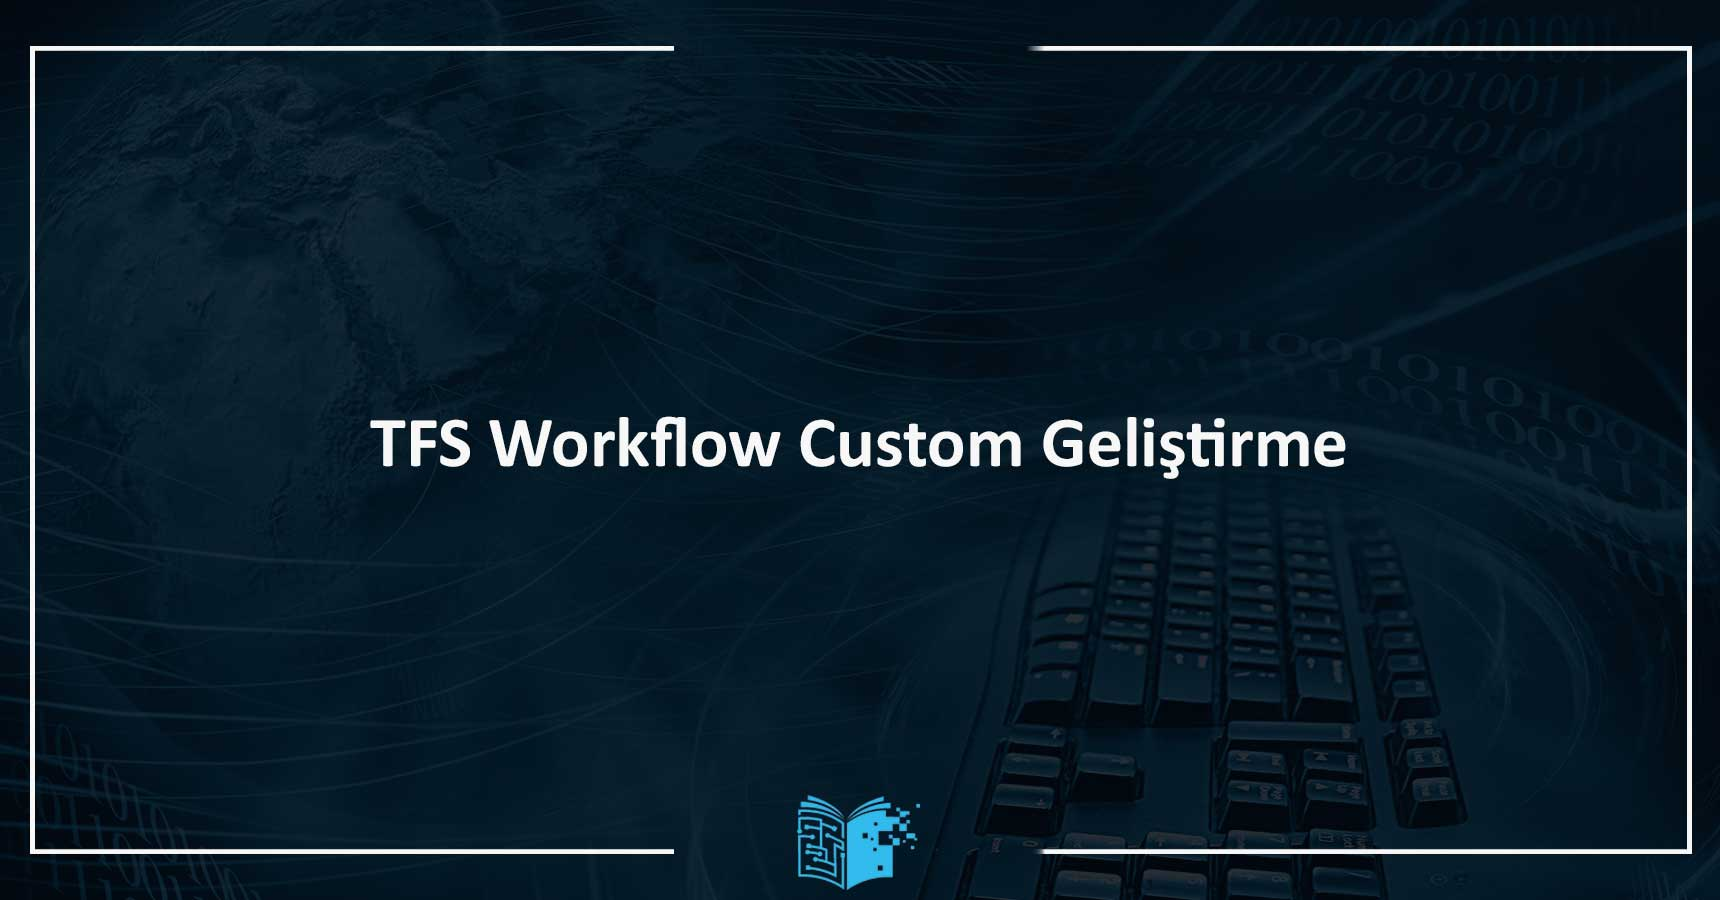 TFS (Team Foundation Server) Workflow Custom Geliştirme